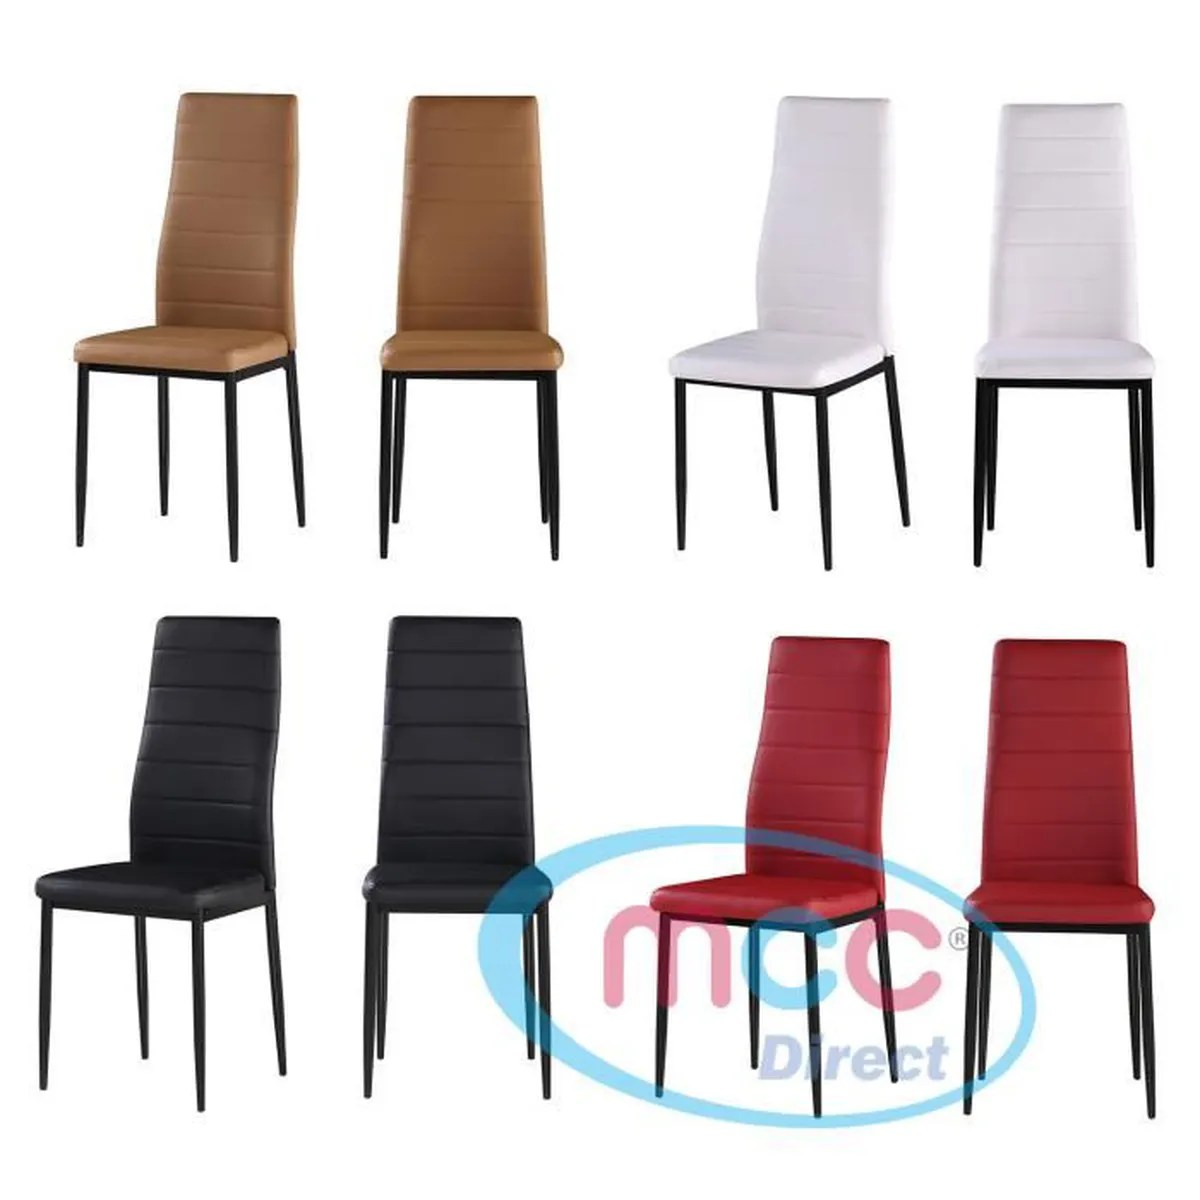 Grossiste Mobilier Restaurant Table Chaise Restaurant Awesome Galiane Meubles Et